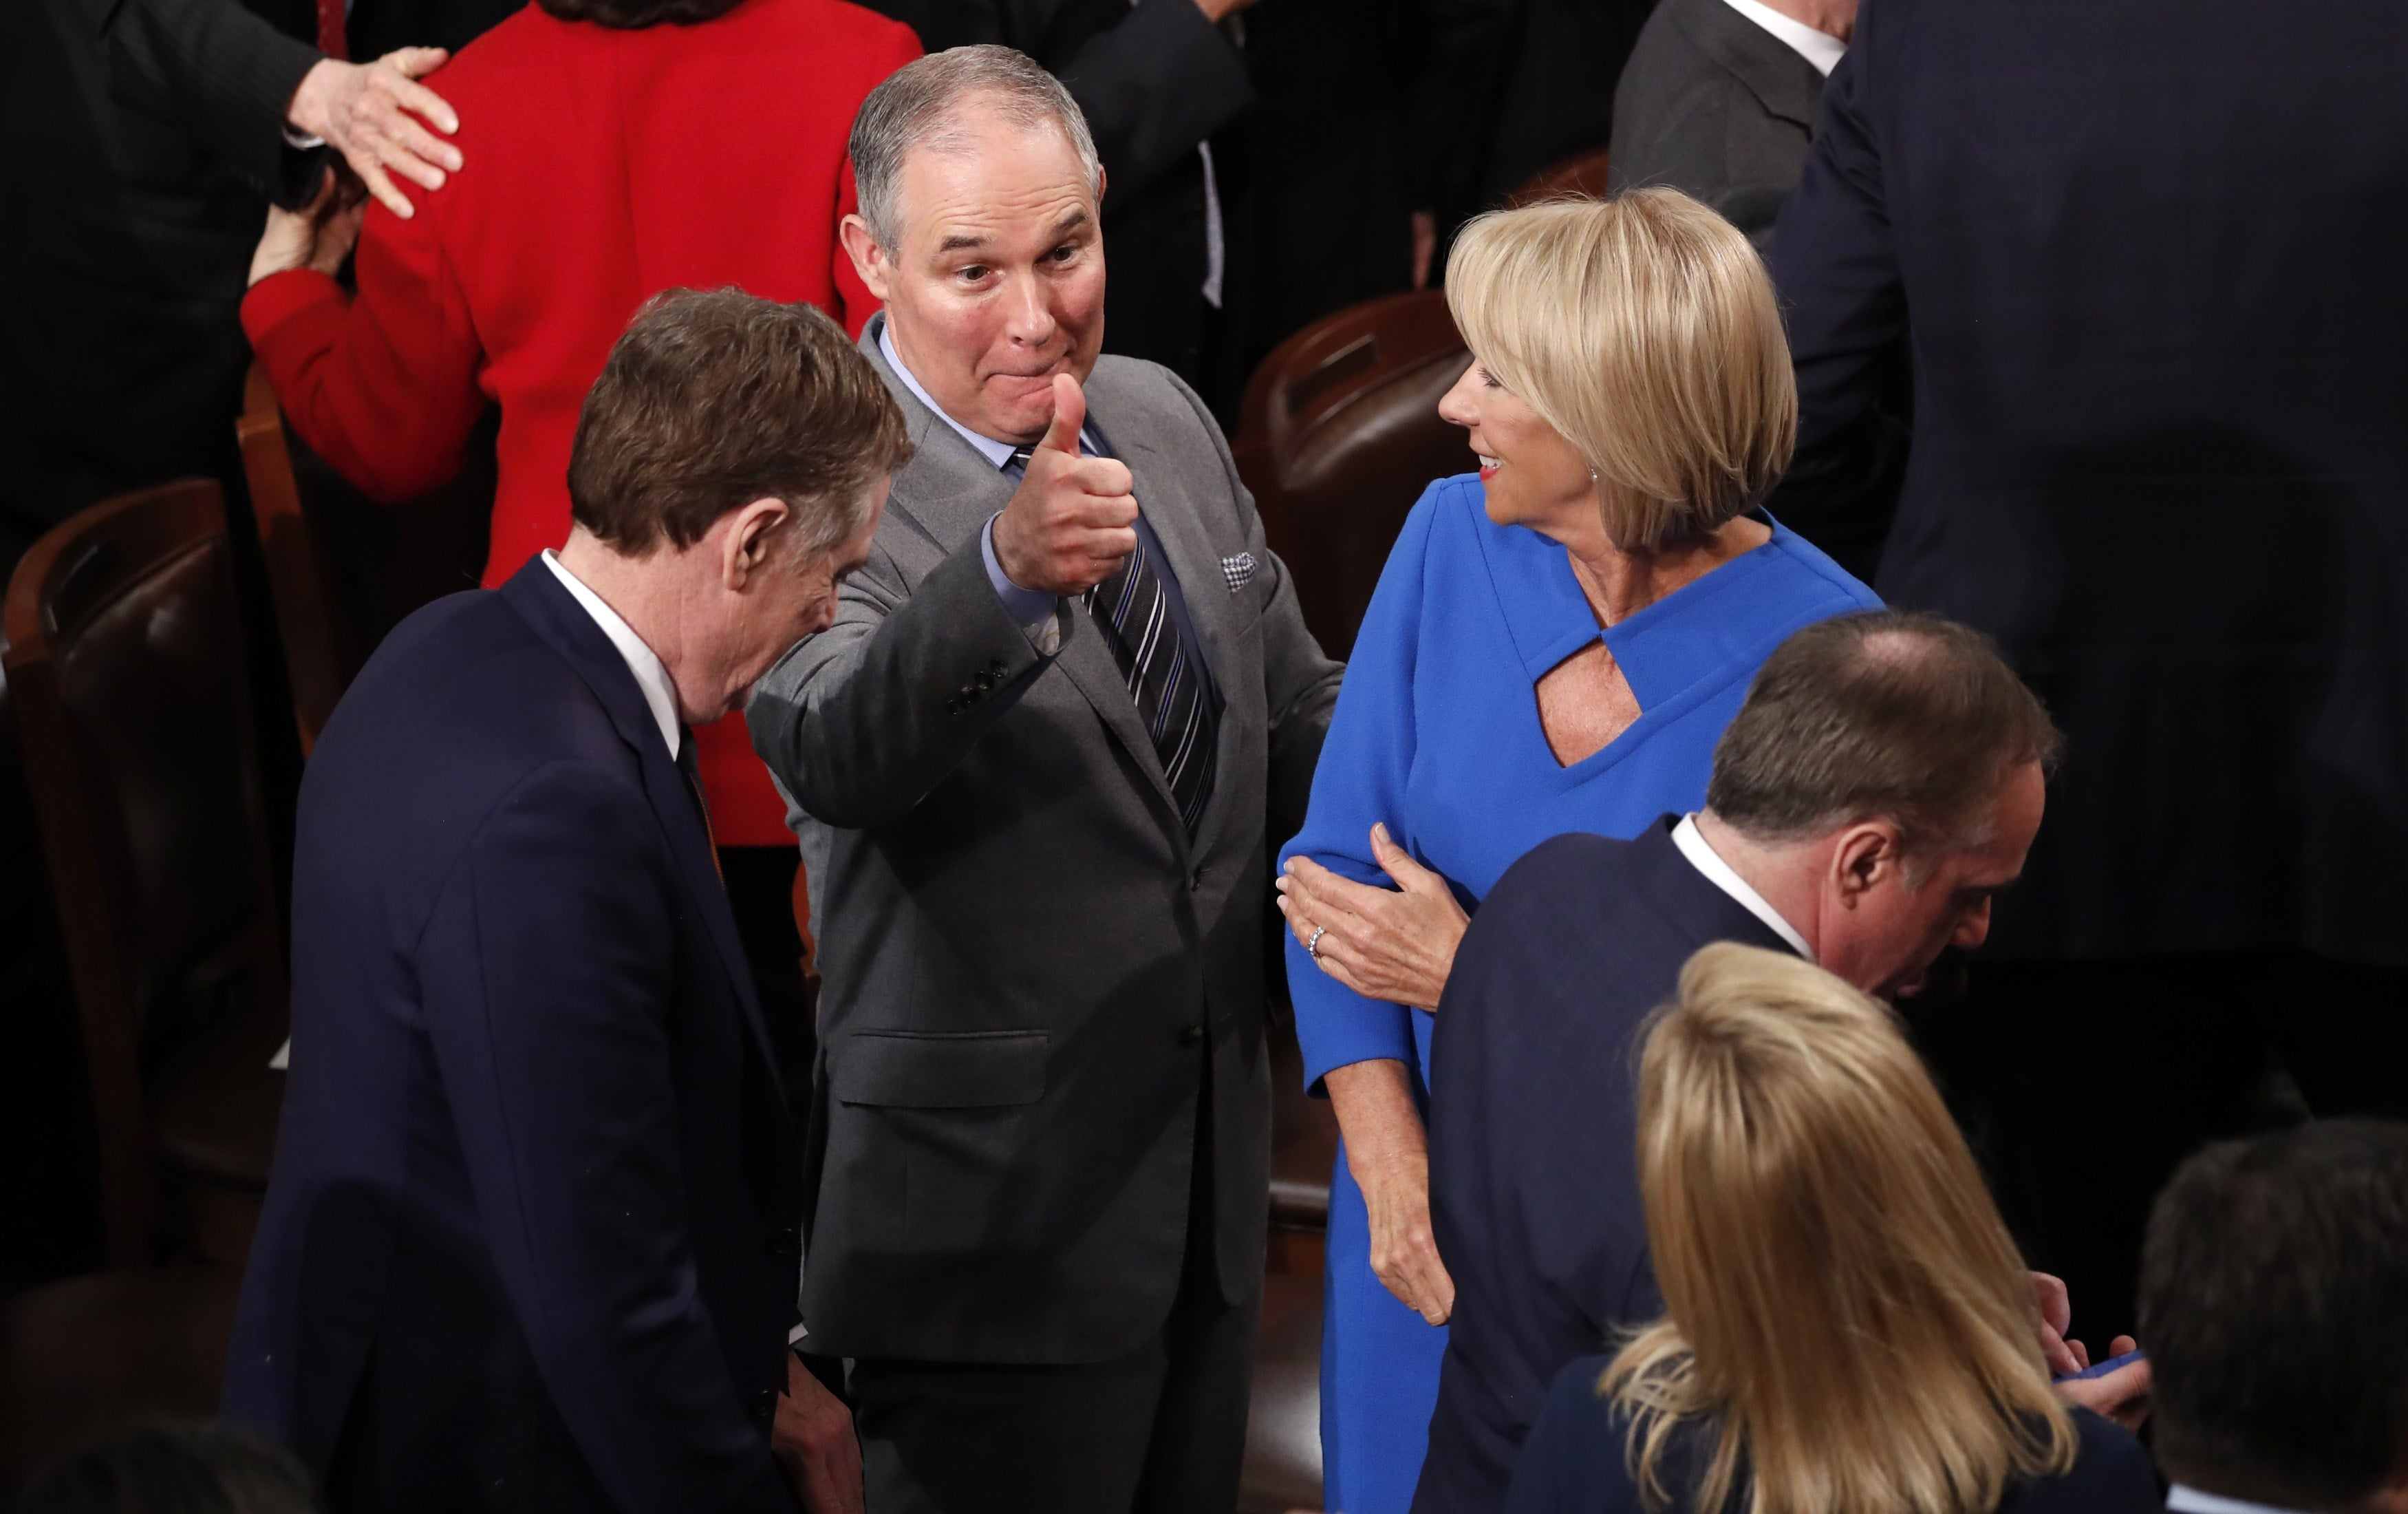 EPA chief Pruitt gives thumbs up after U.S. President Trump delivered his State of the Union address in Washington